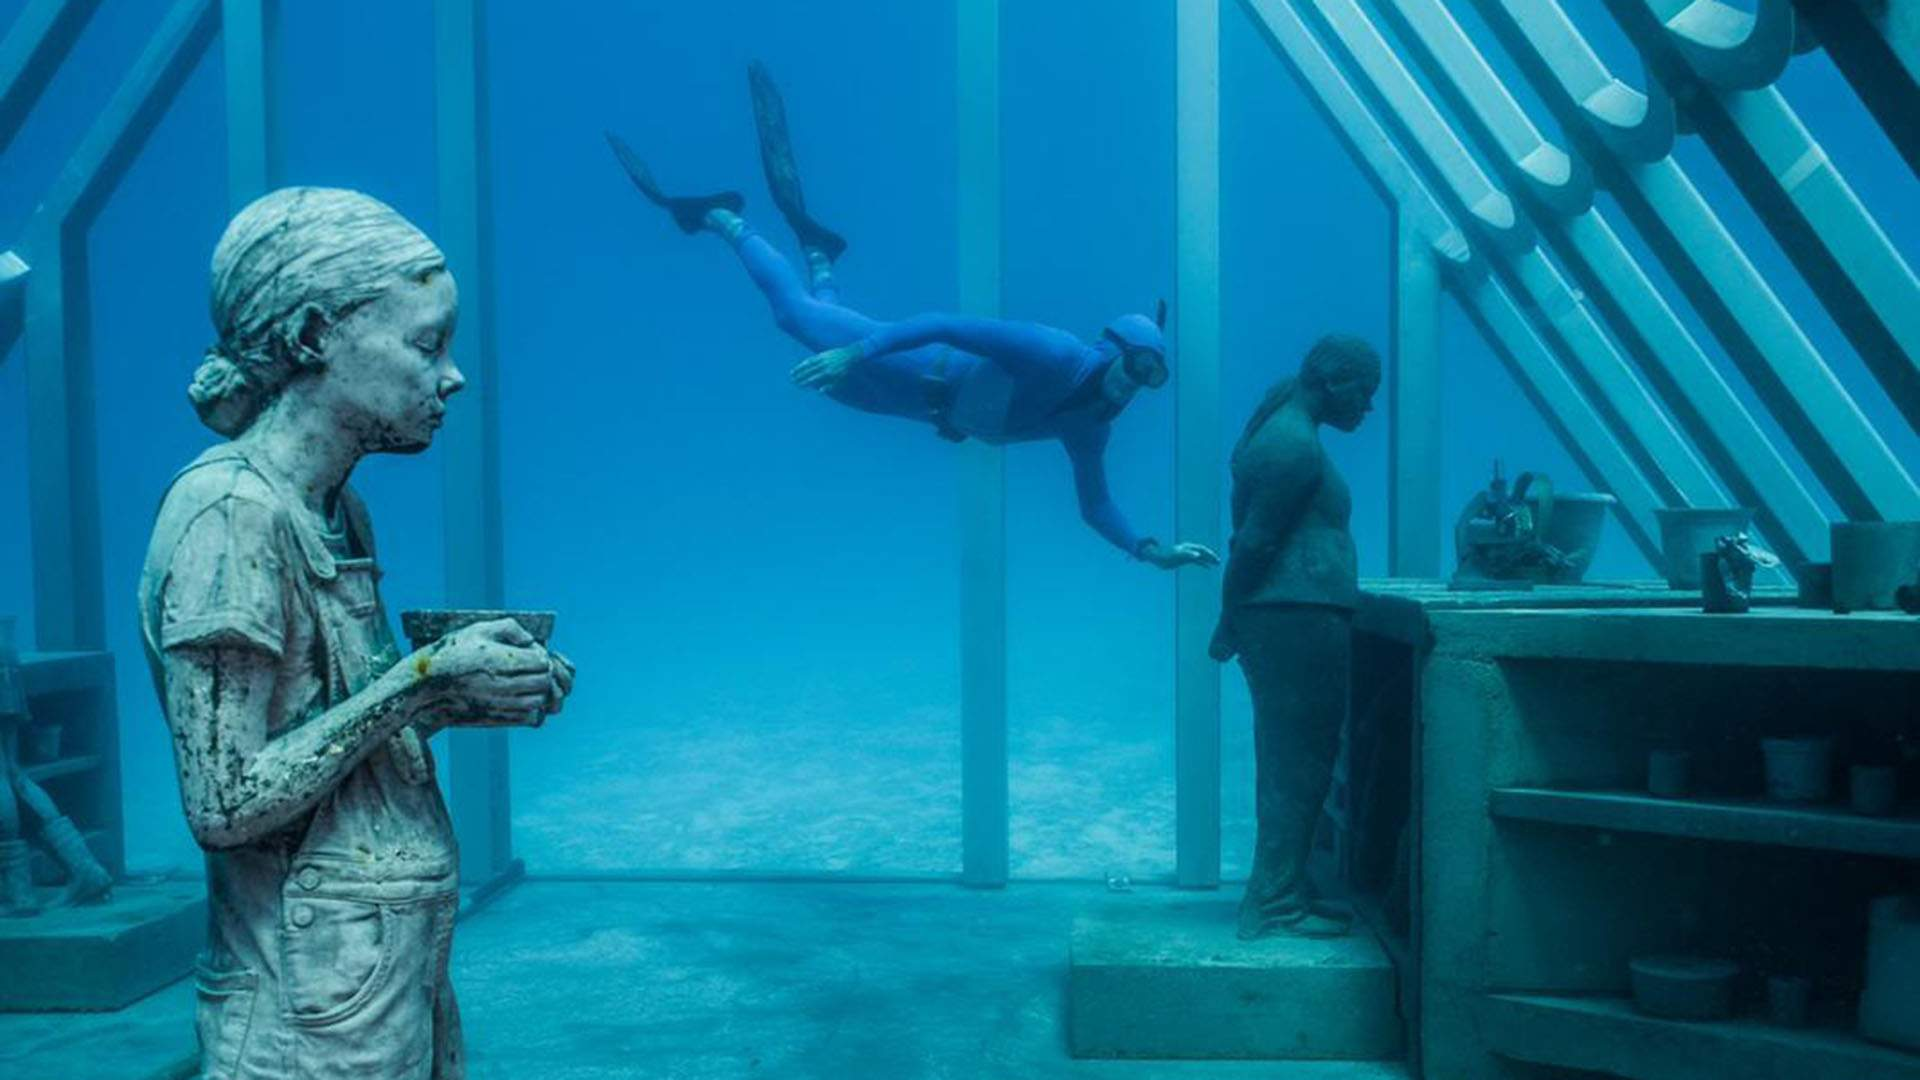 Australia Is Now Home to the Southern Hemisphere's First Museum of Underwater Art